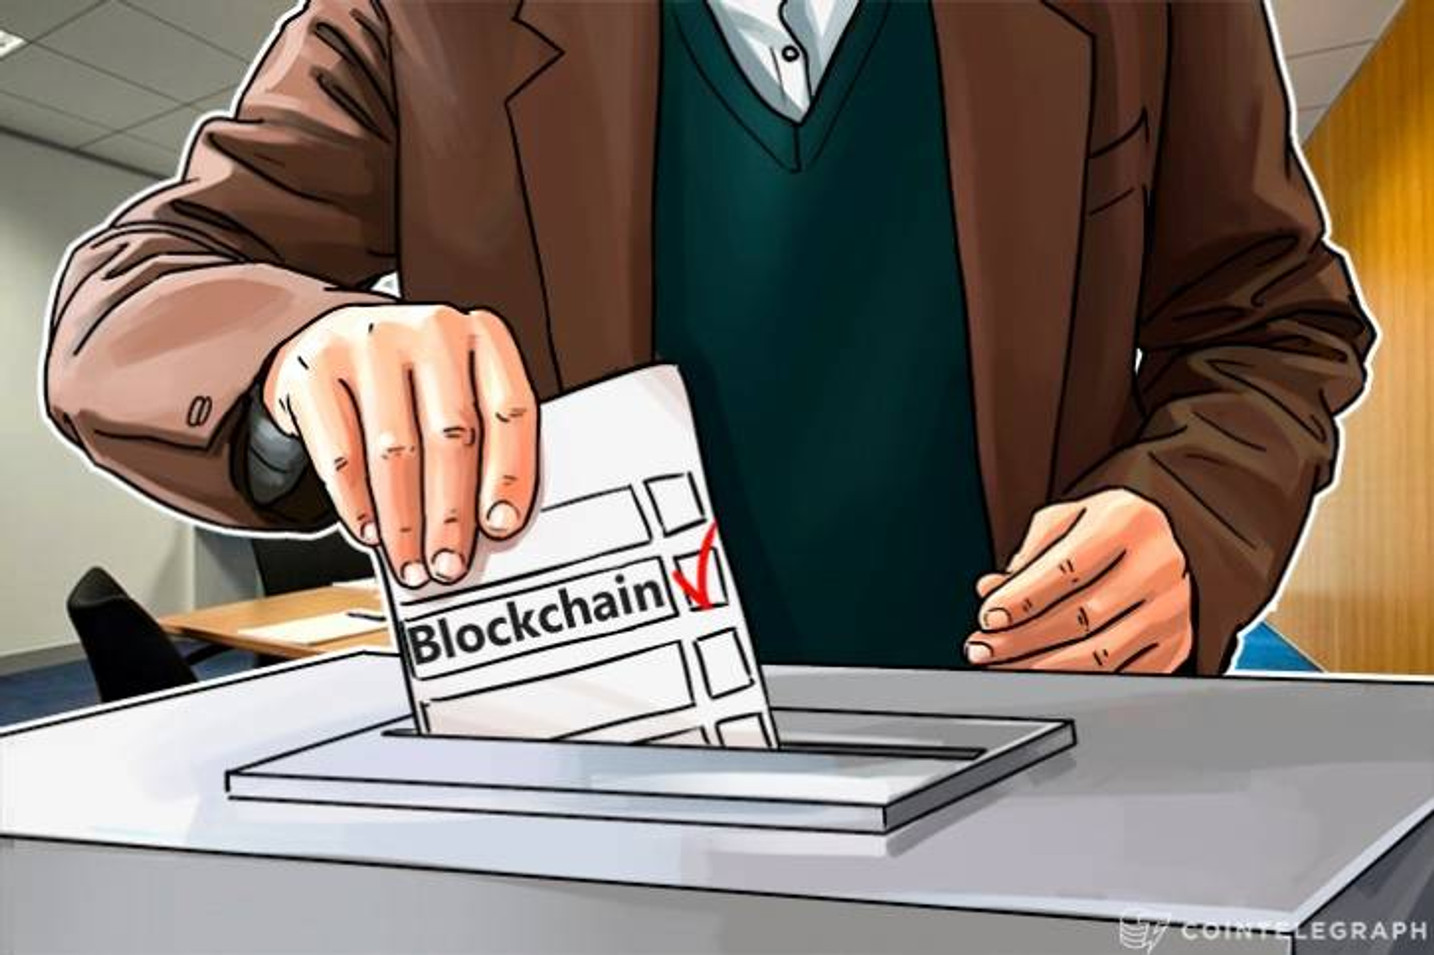 Stati Uniti: il West Virginia completa le prime elezioni supportate dalla blockchain